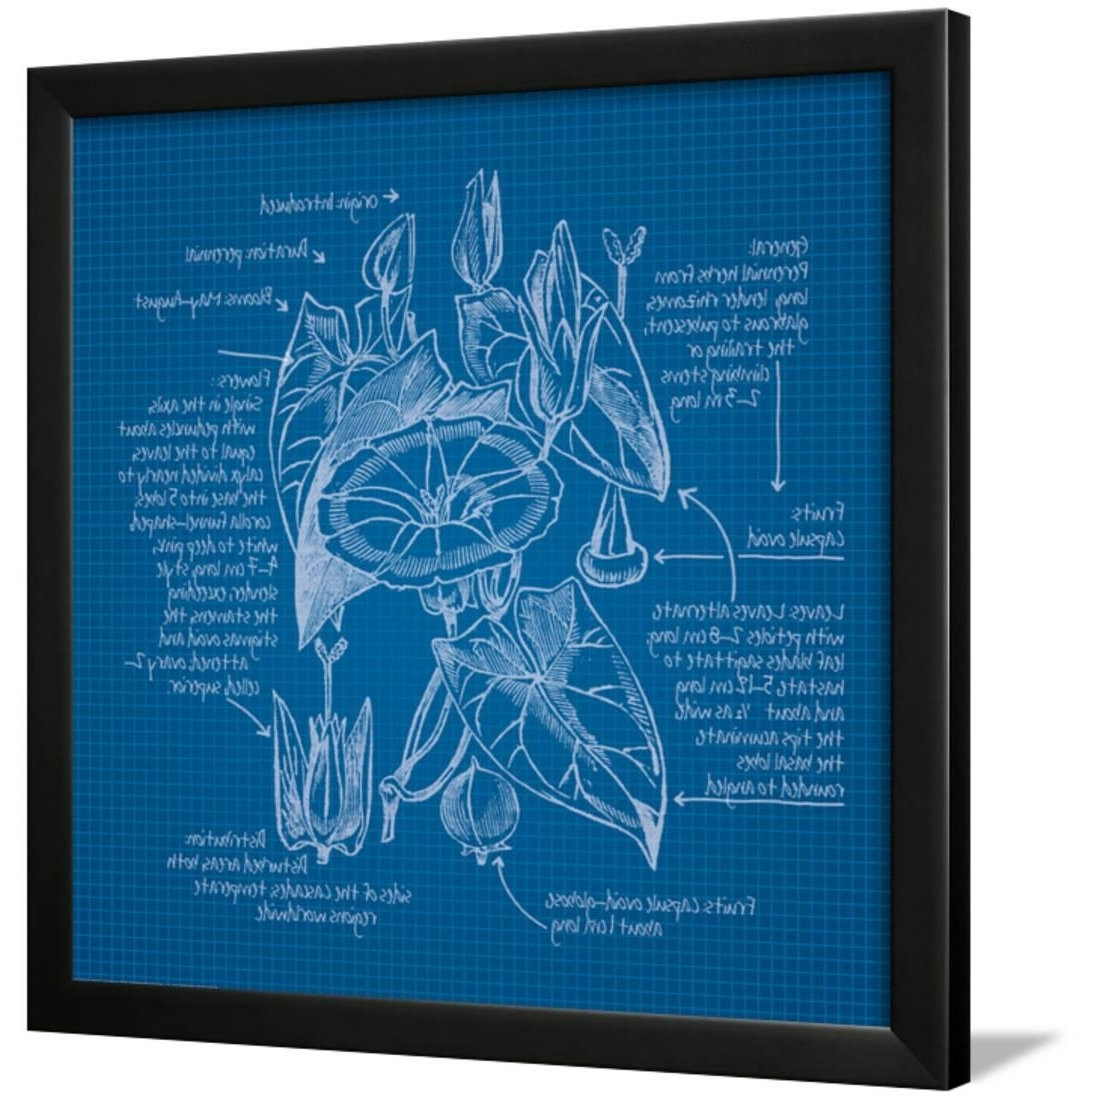 Well Known Celler Teal Side Chairs Pertaining To Blueprints 3 Framed Print Wall Artnobleworks Inc (View 18 of 20)